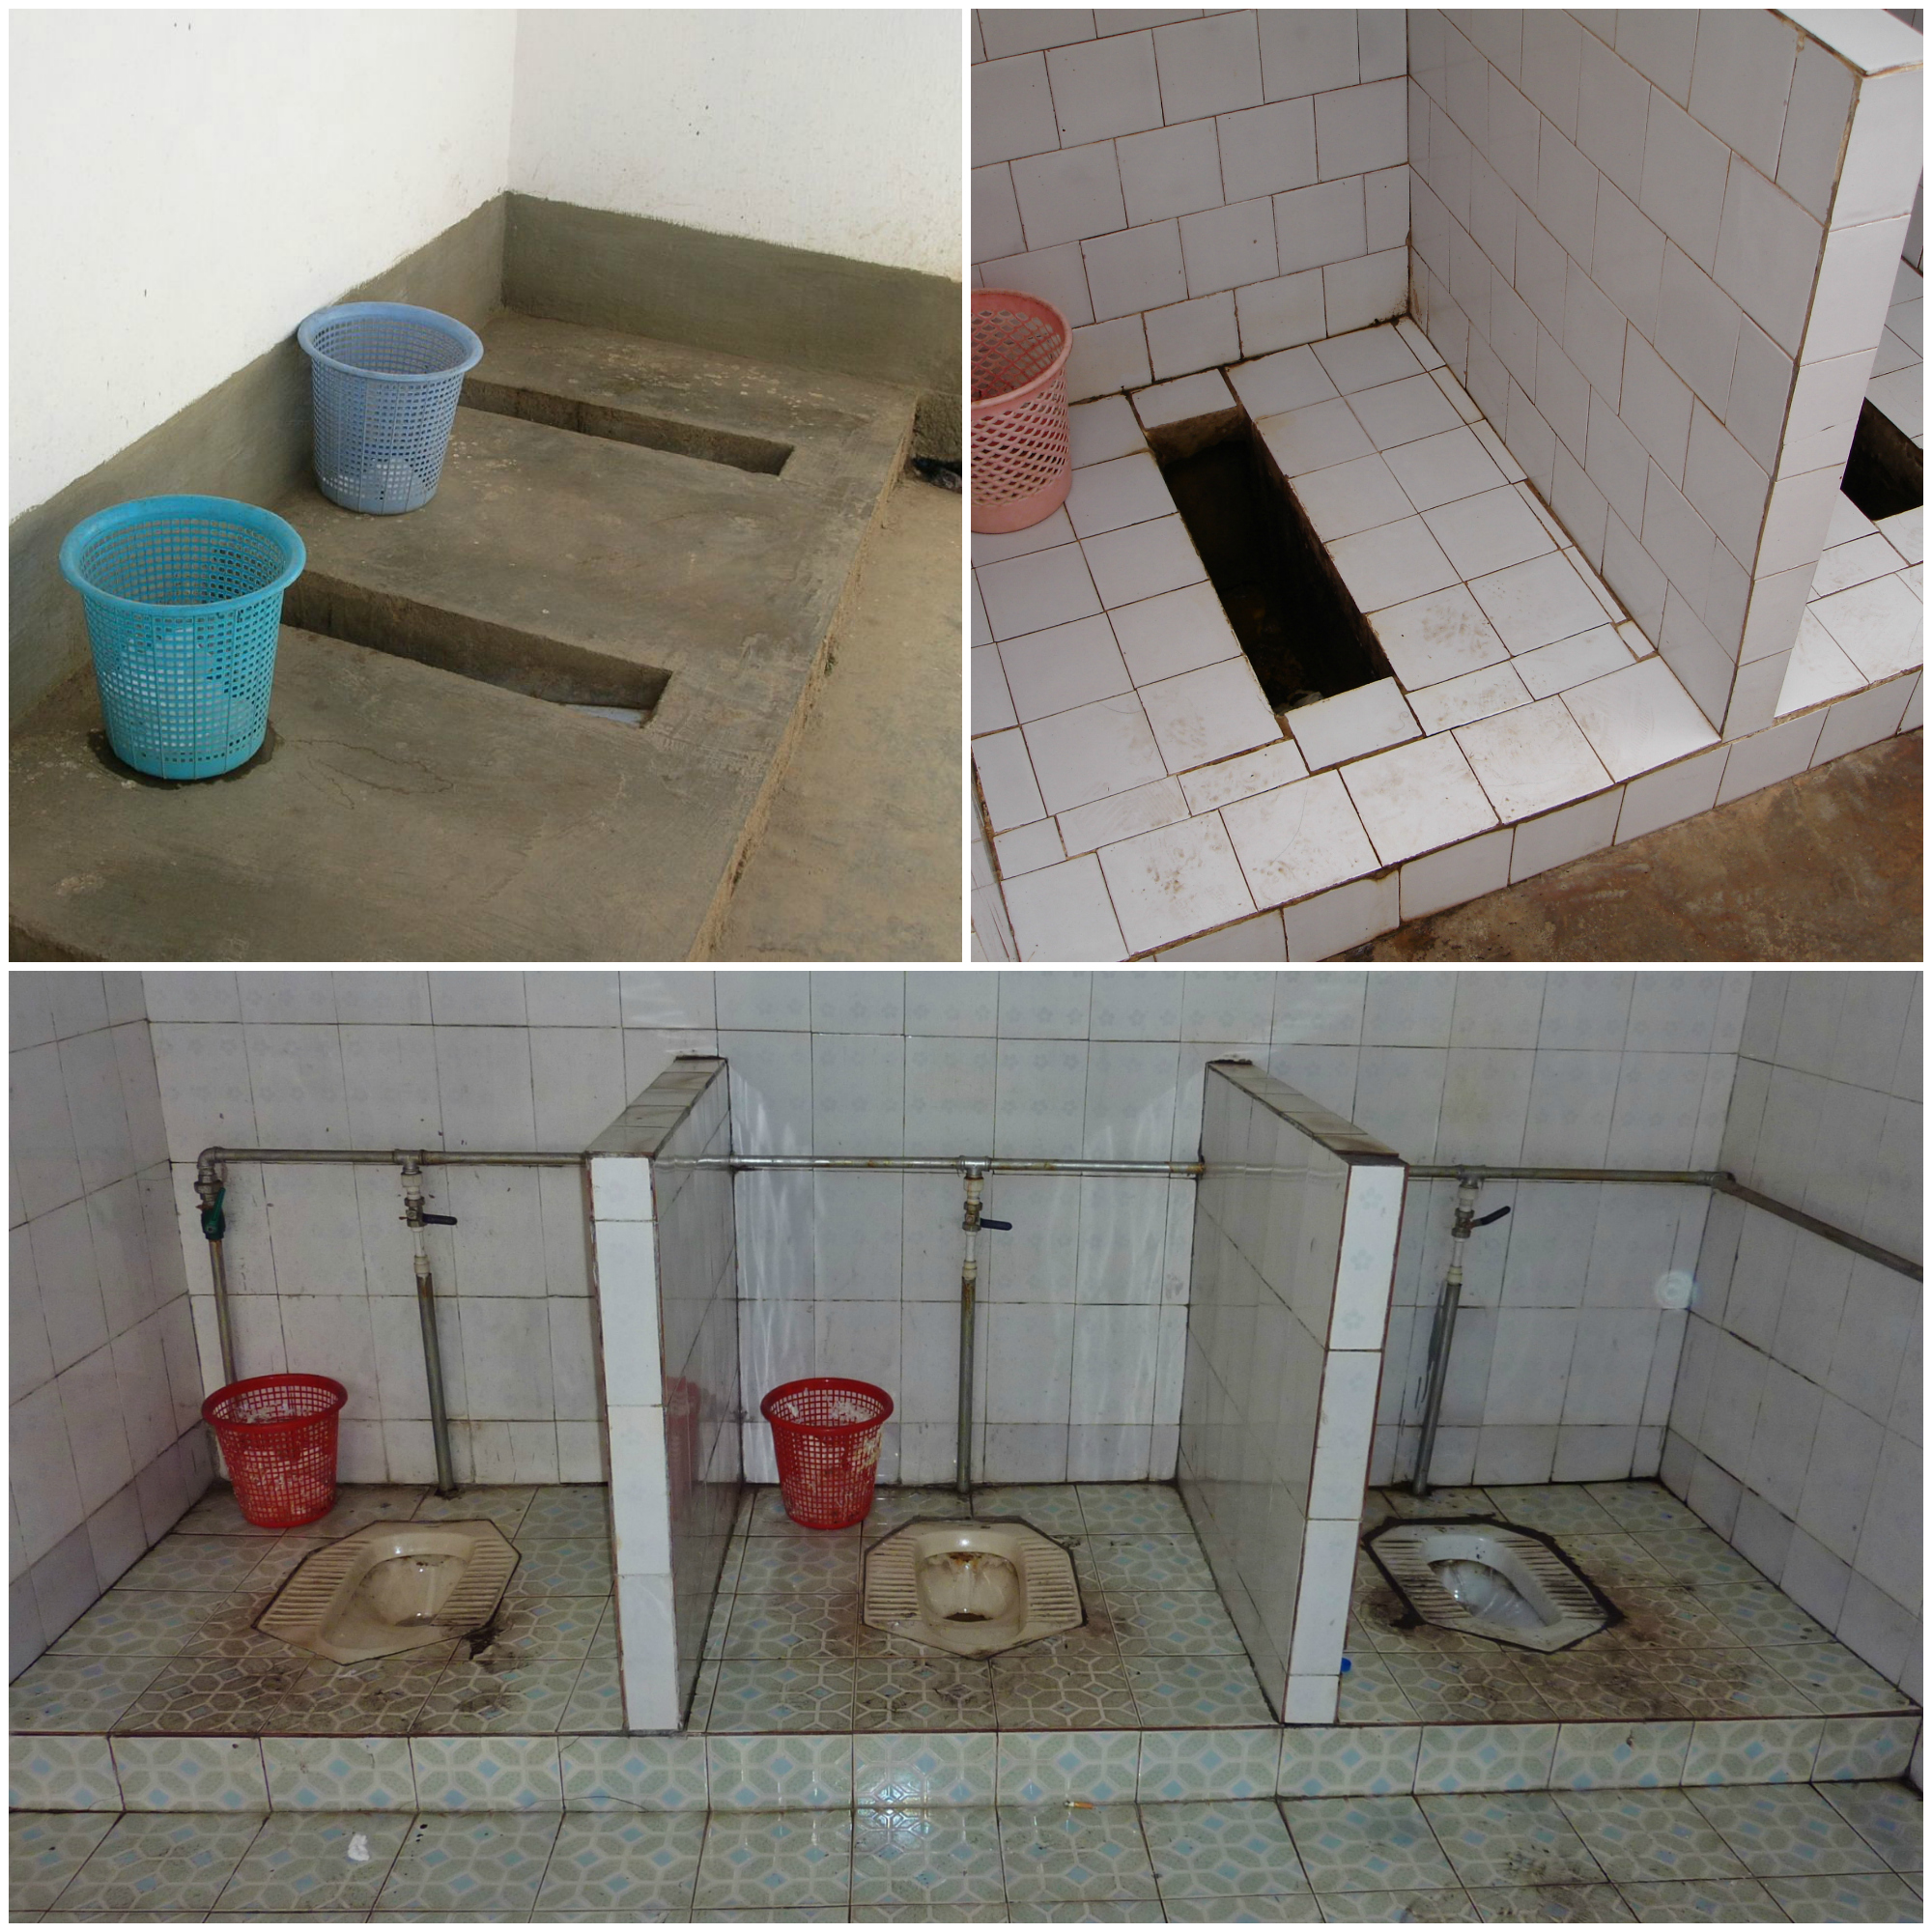 Squatting toilets in China